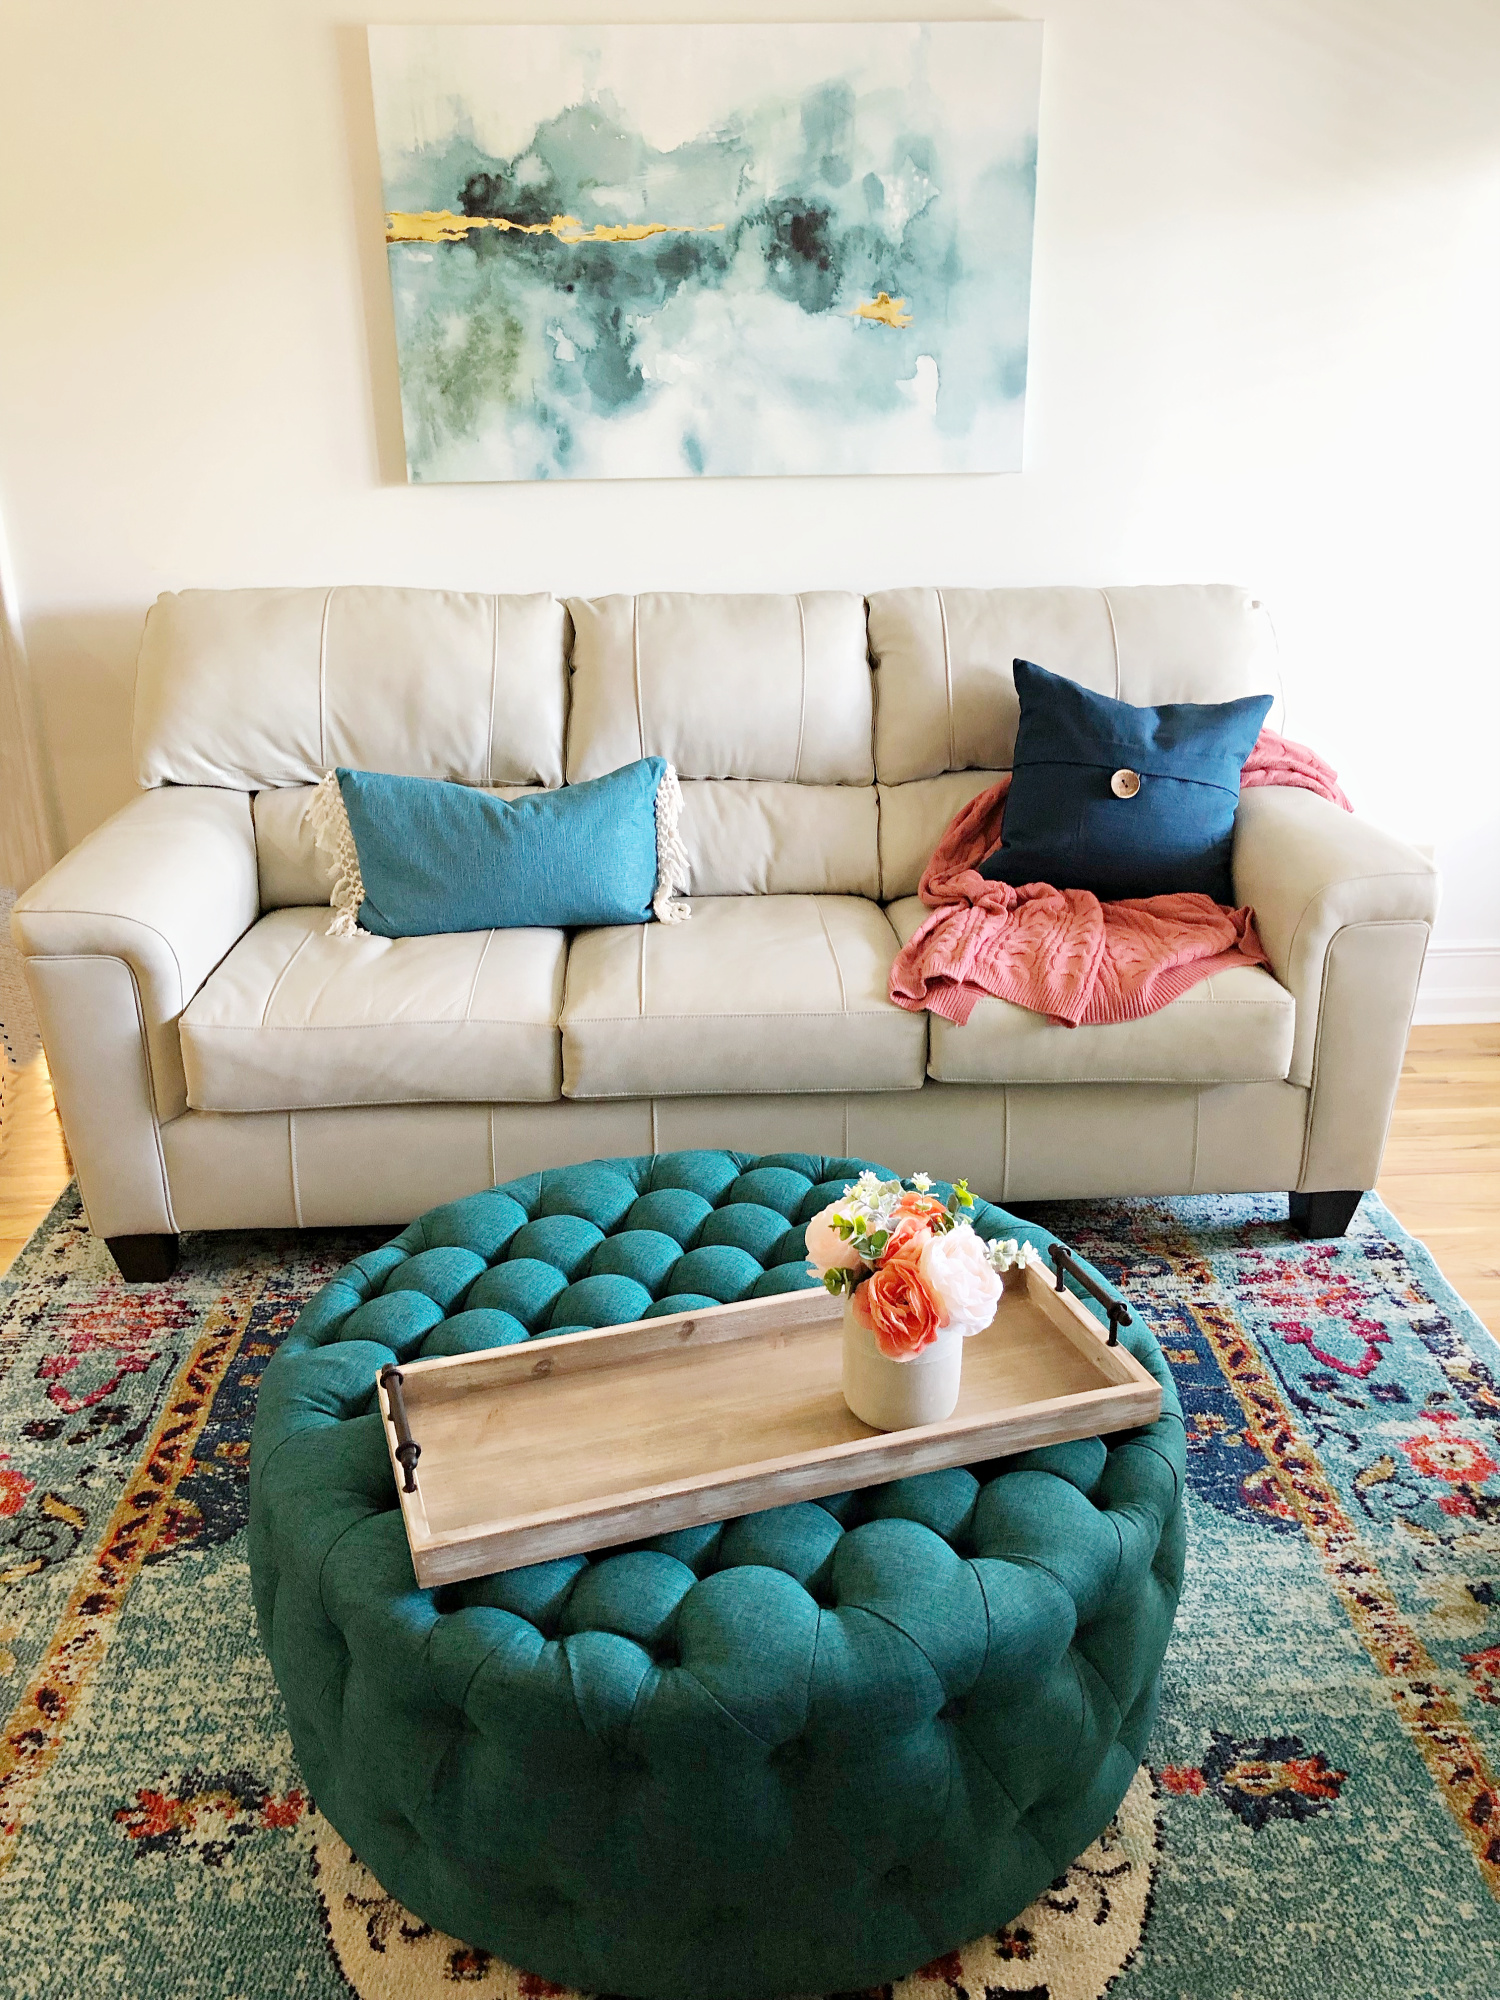 Living room art ottoman rug teal - TEAL LIVING ROOM DECOR - LAKE CONDO or Beach